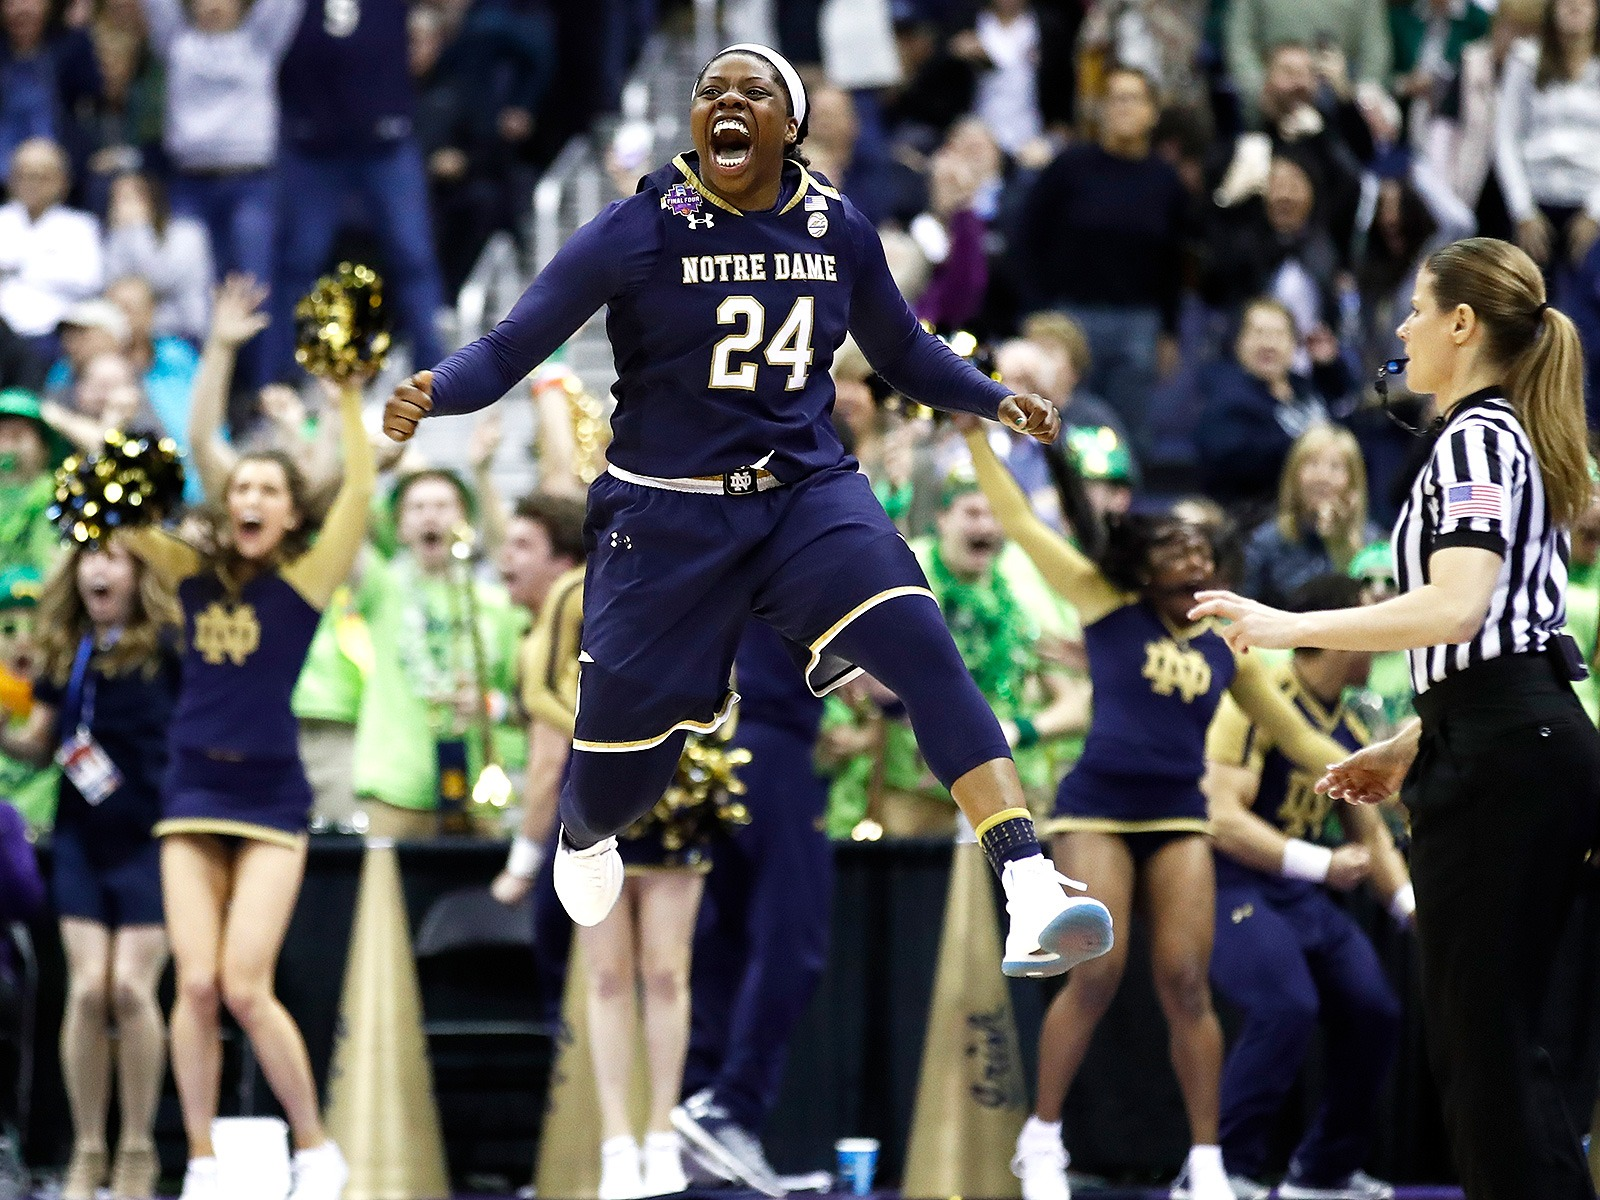 Notre Dame Wins NCAA Women's Championship with Epic Comebacks